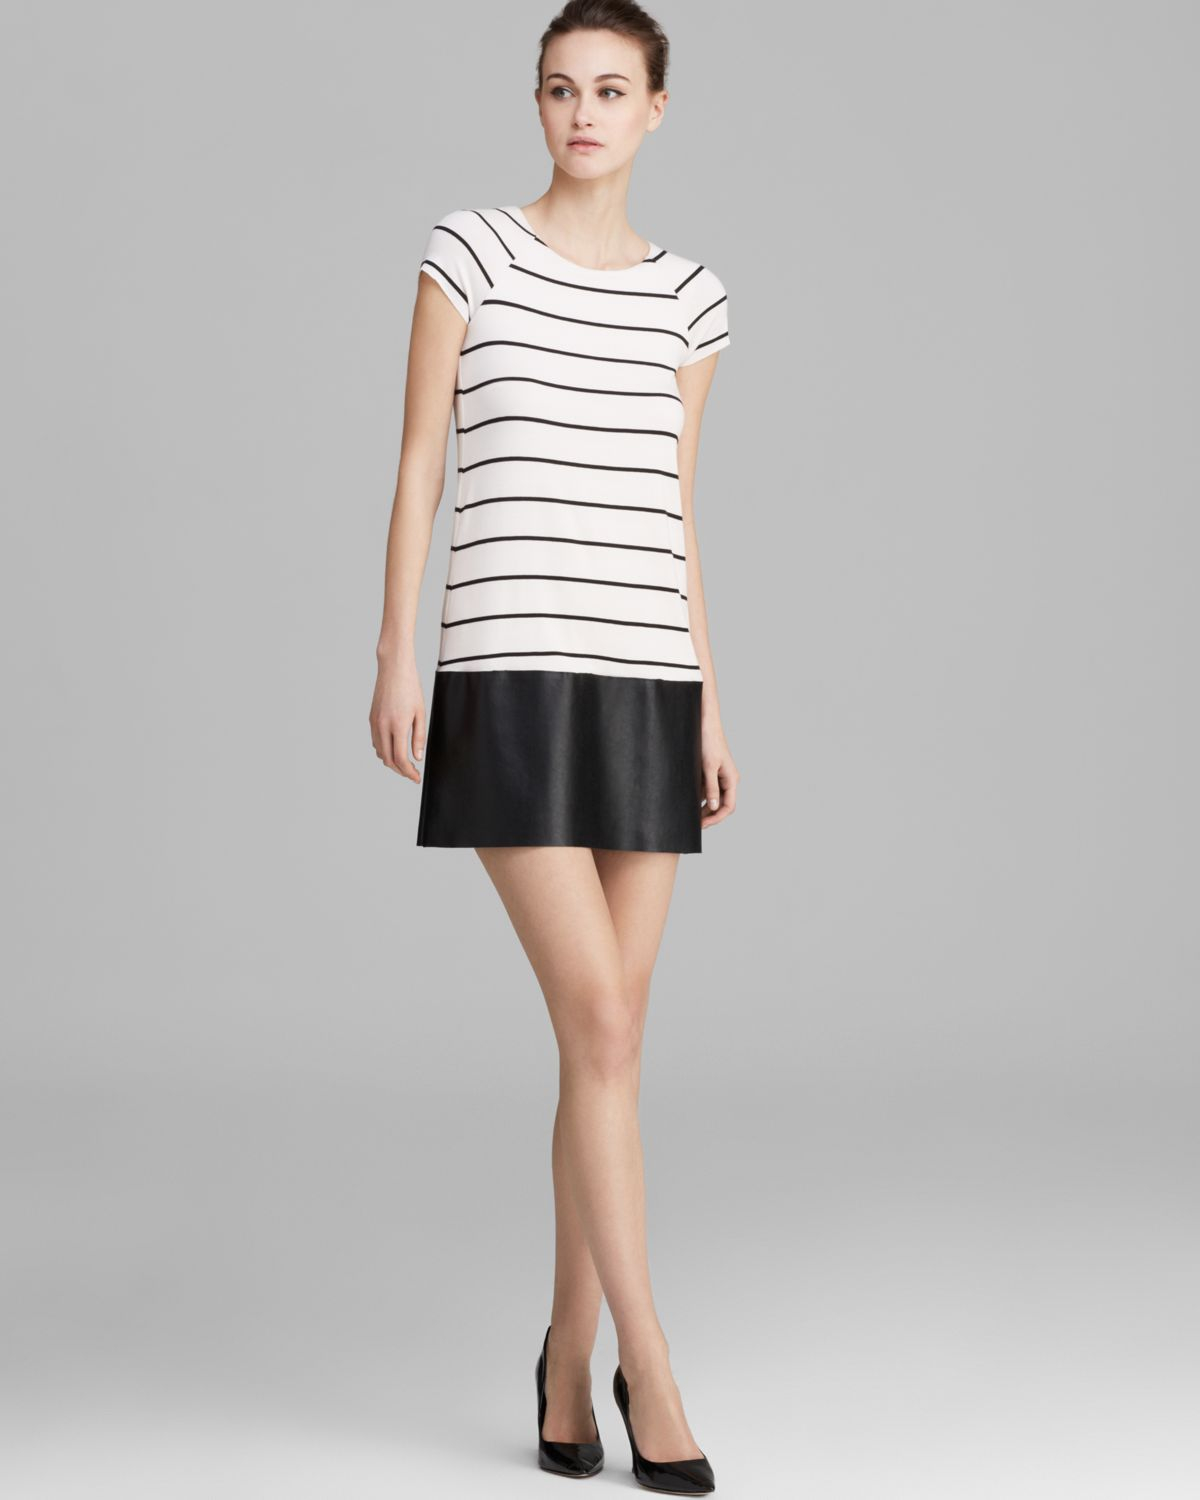 Bailey 44 Dress Dj Baba Cap Sleeve Striped with Faux Leather Skirt ...